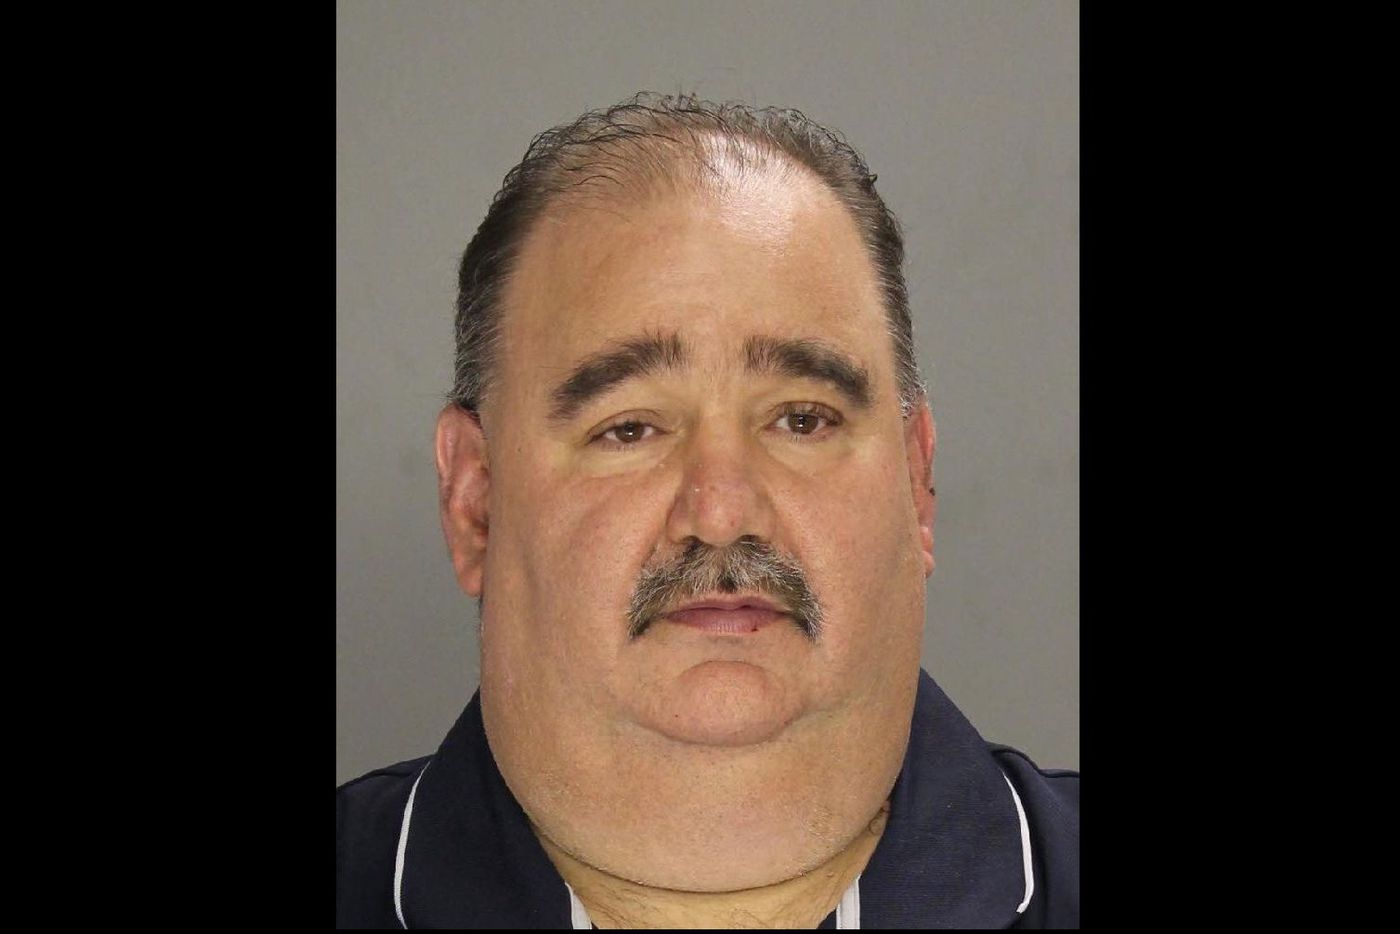 DA: Delco fire chief stole from his unit to pay for casino spending, online shopping